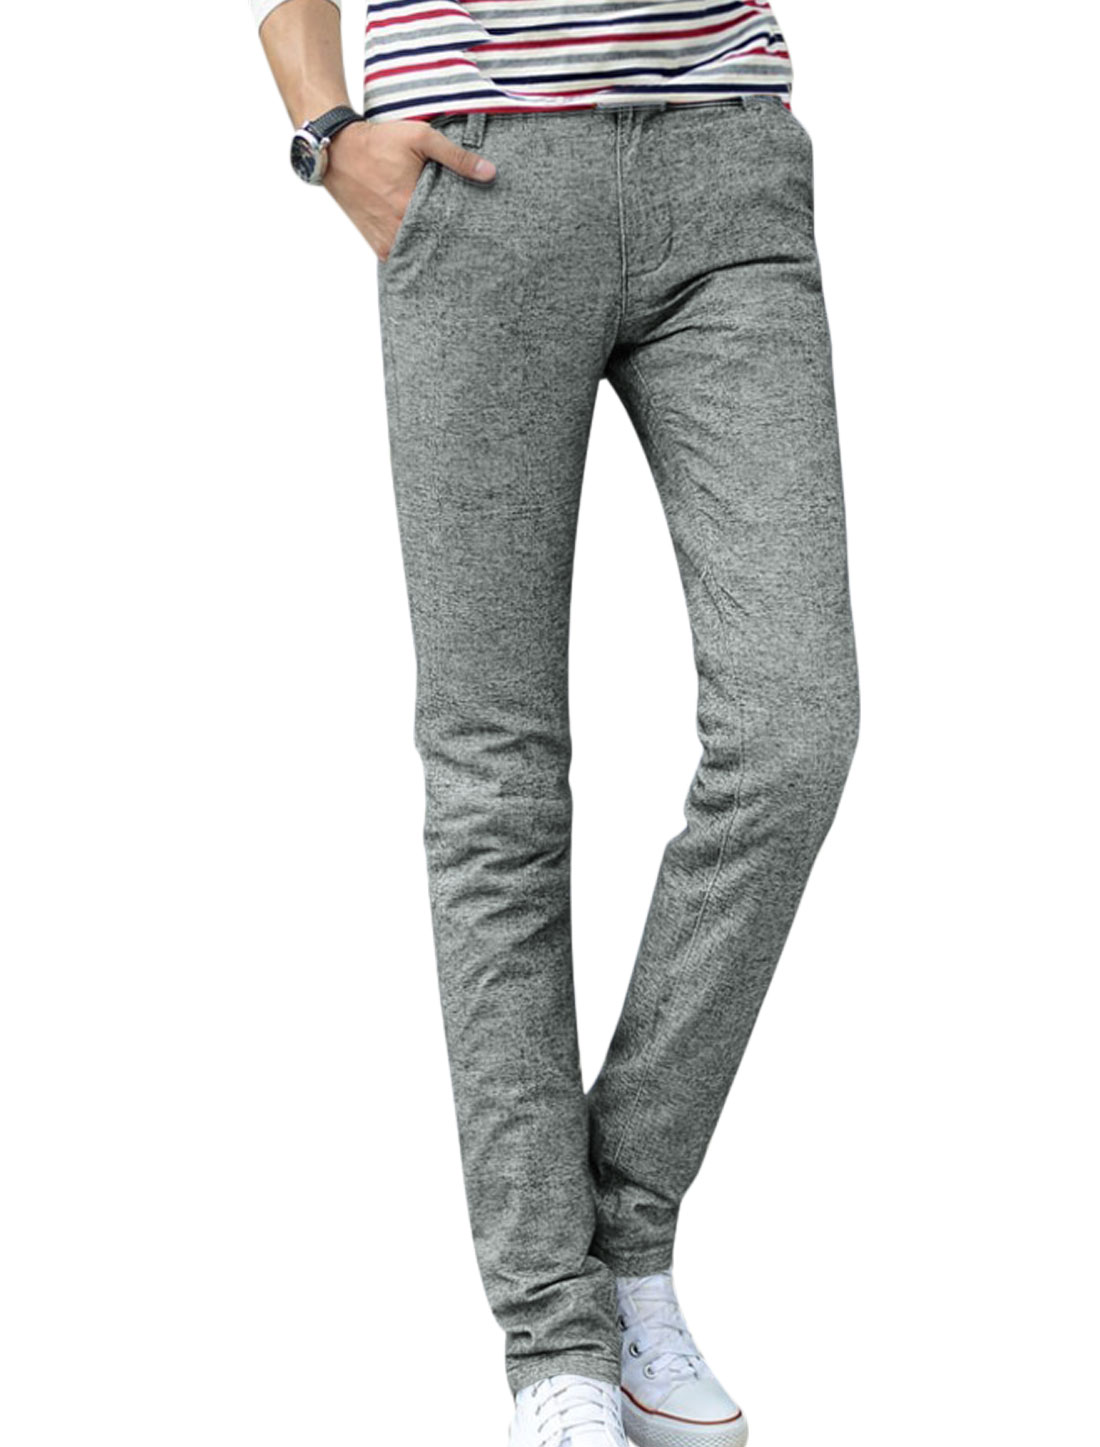 Men Light Cool Gray Zip Fly Belt Loop Straight Front Pockets Slim Fit Casual Pants W30